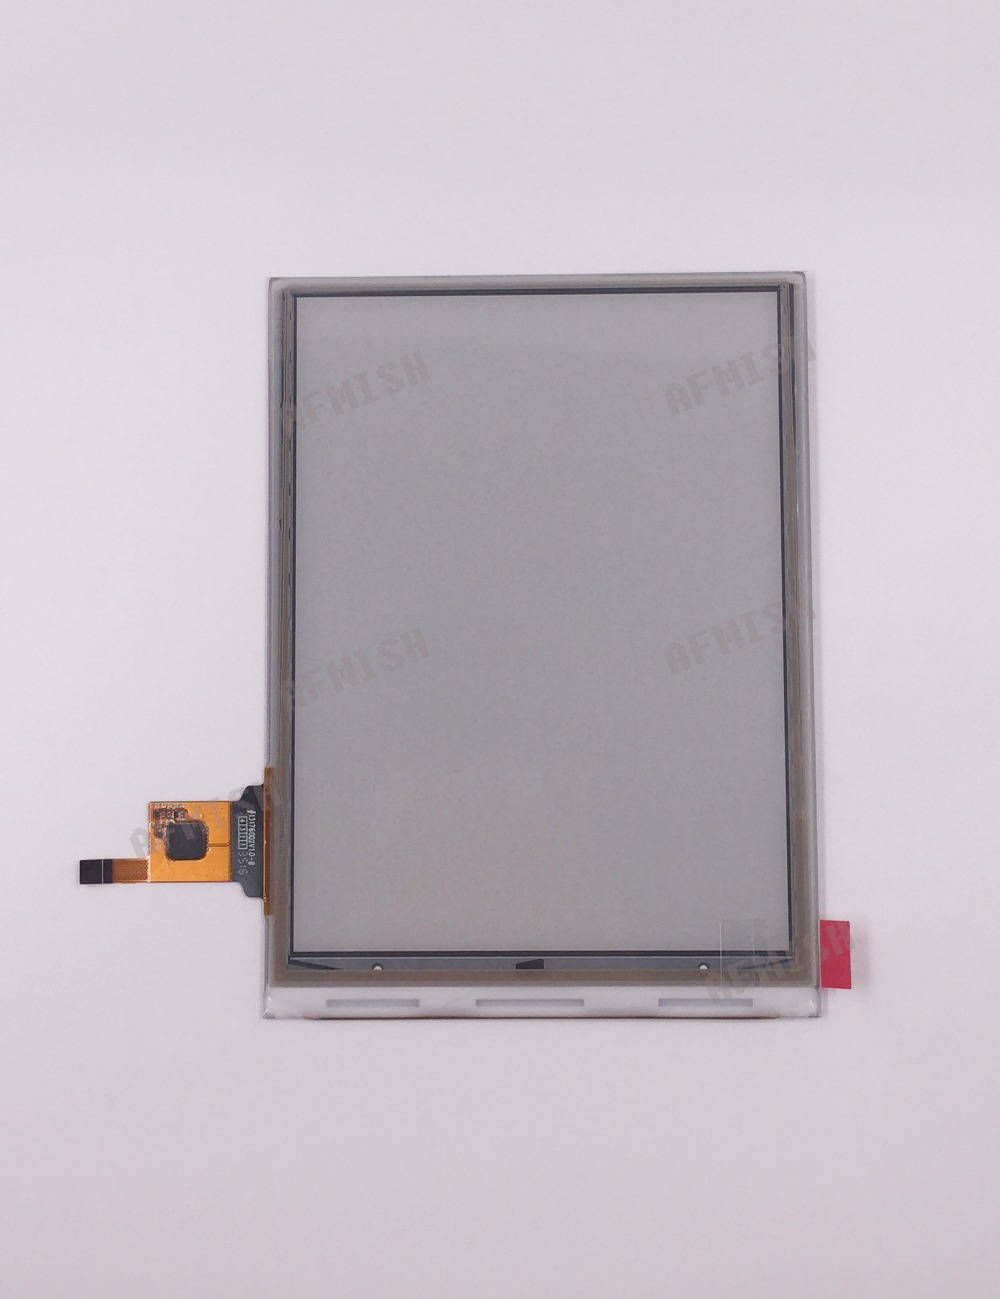 ED060SD1 100 New 6 inch LCD Display screen for PocketBook 625 Basic Touch Screen no backlight